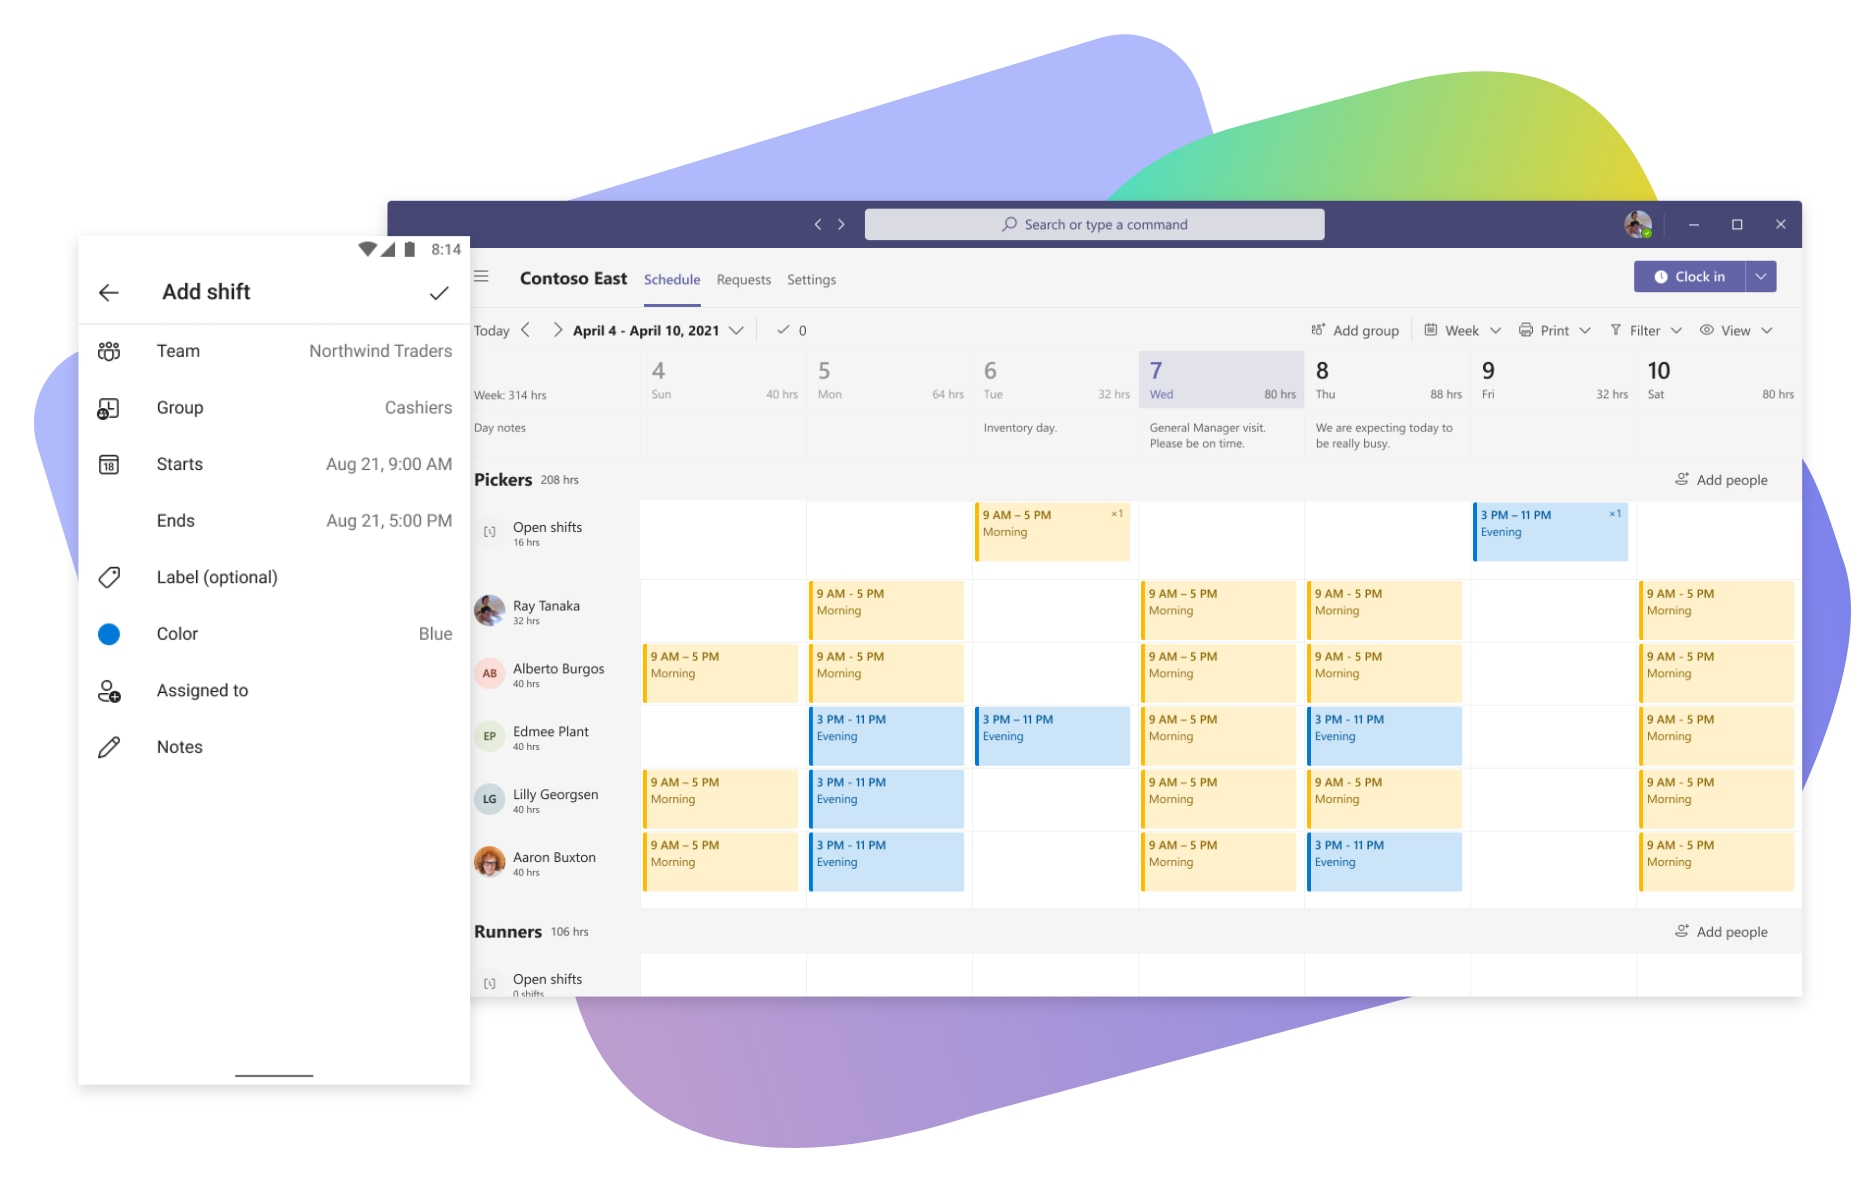 A shift schedule and the add shift screen in Teams.